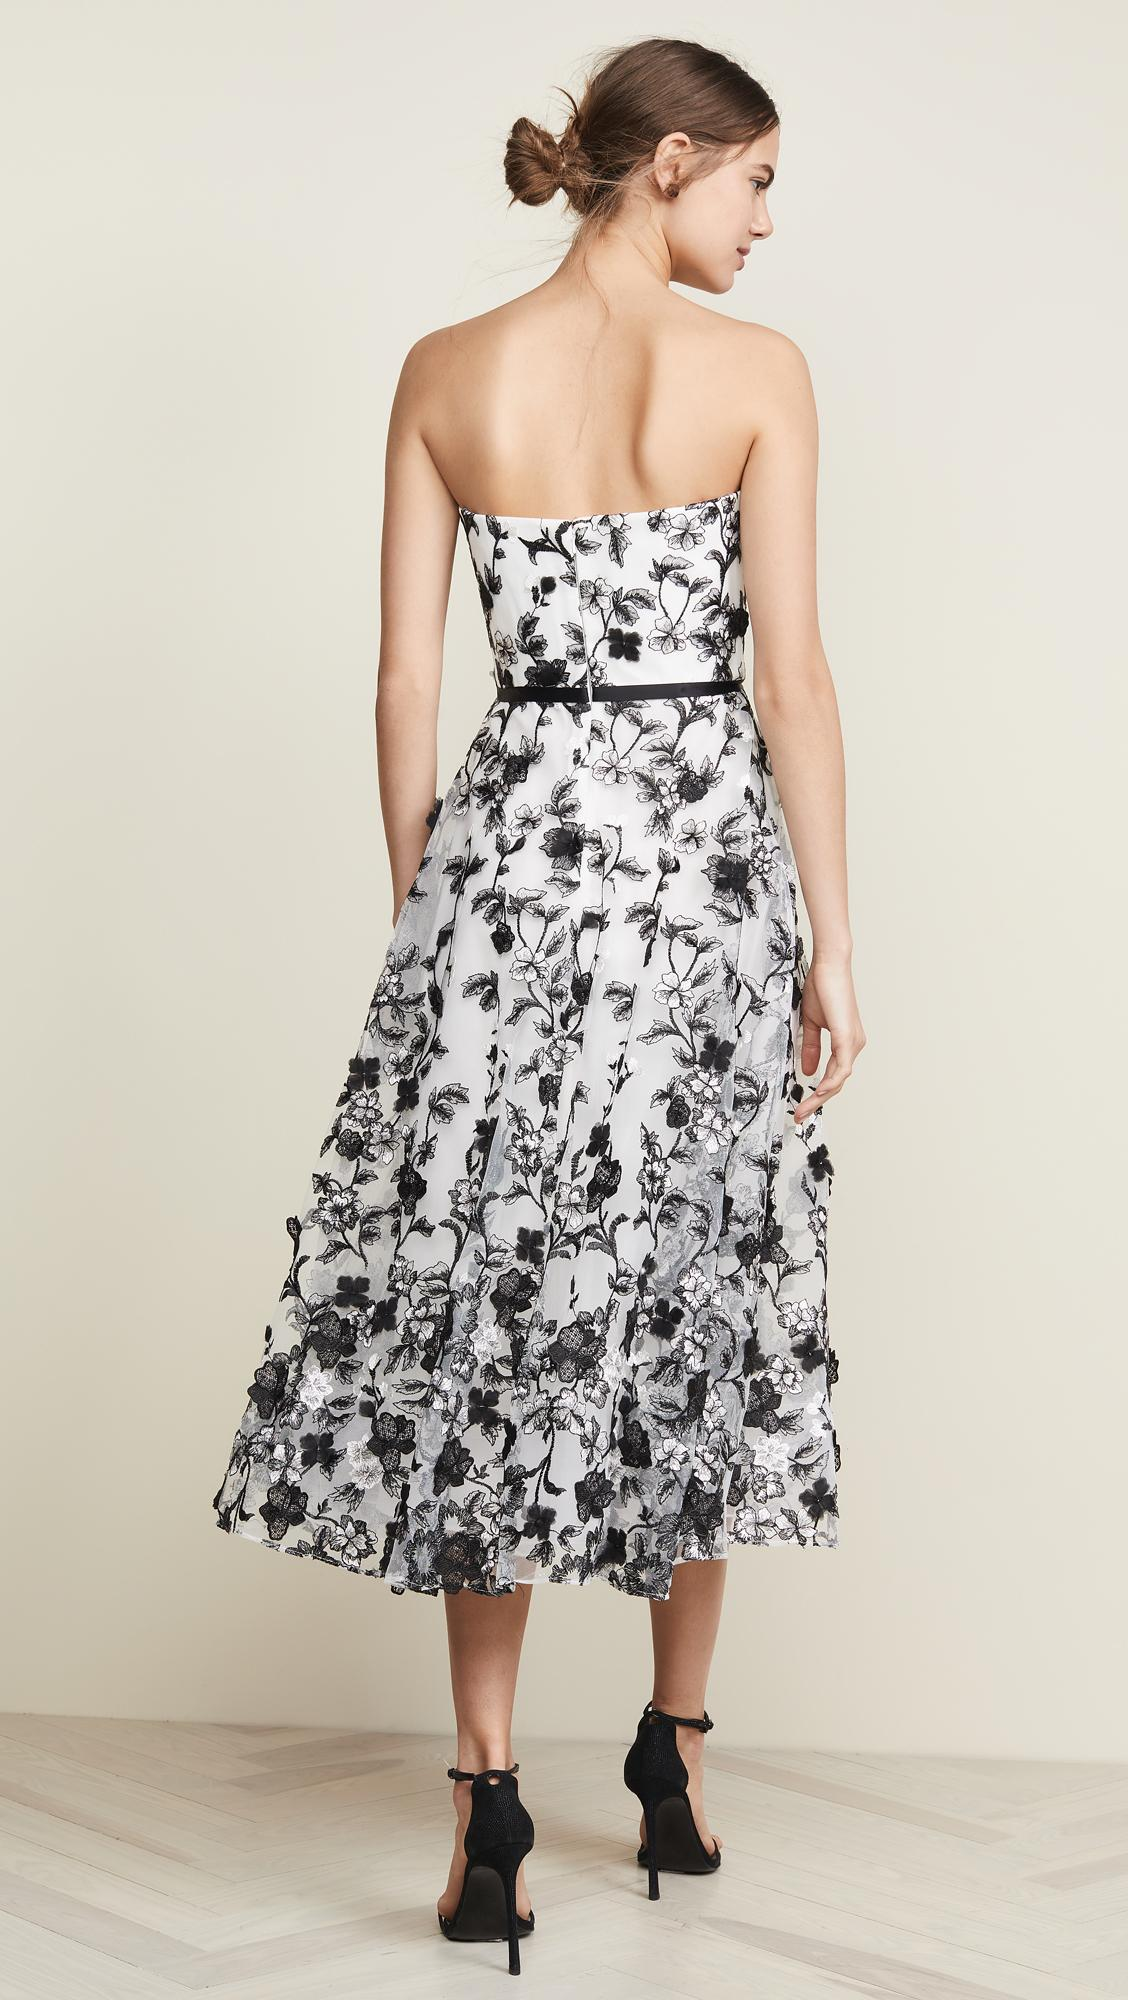 1c8c58976bc Marchesa notte - White Strapless Embroidered 3d Flower Gown - Lyst. View  fullscreen